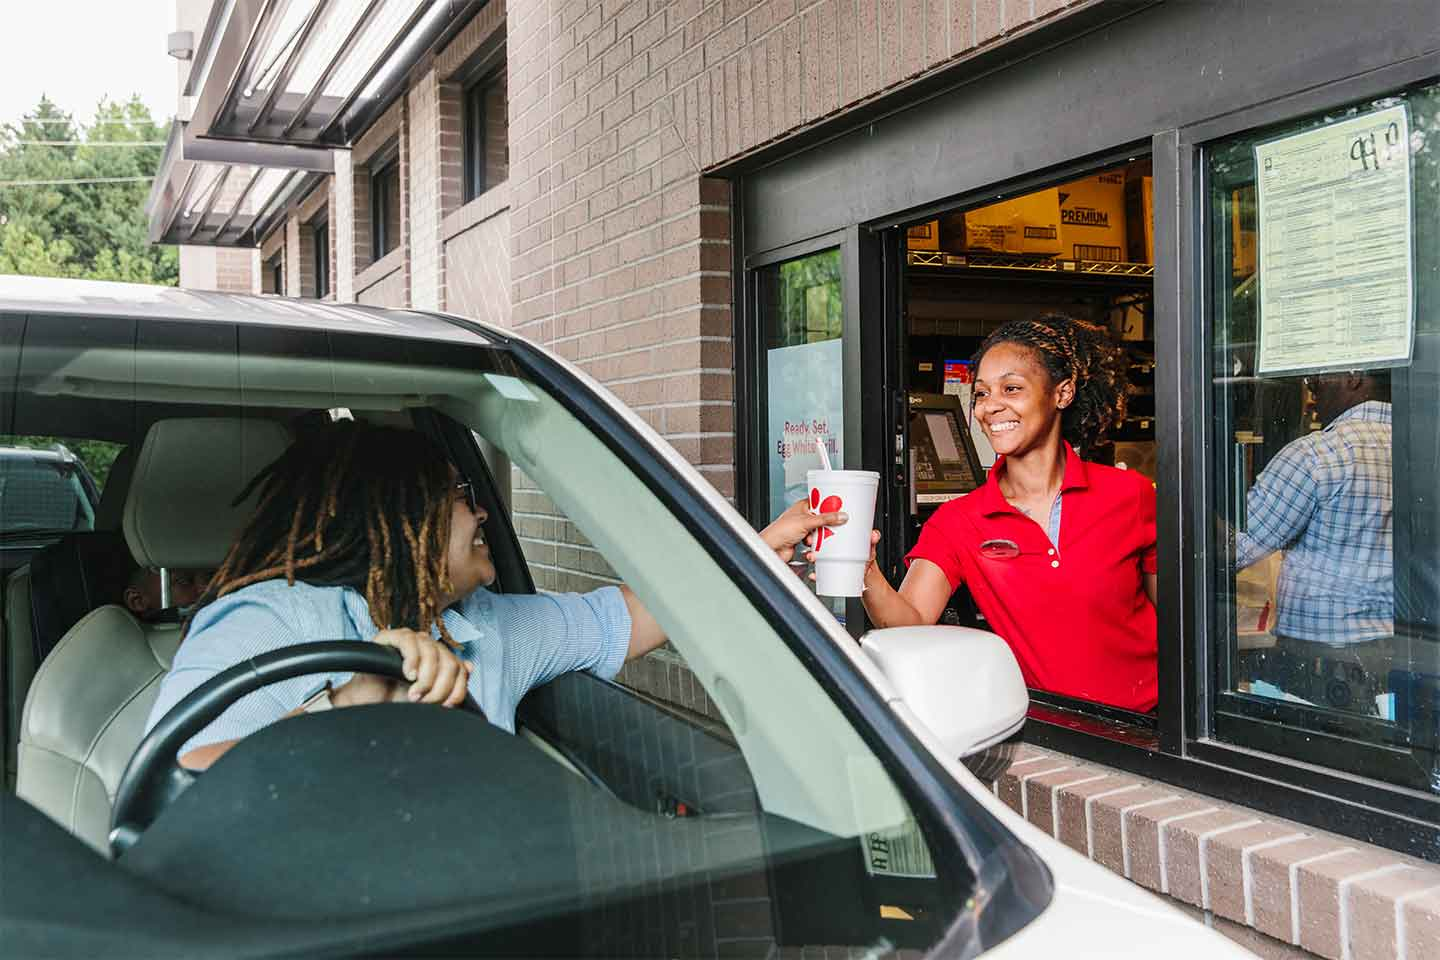 Chick-fil-A representative and customer interaction in the drive thru.